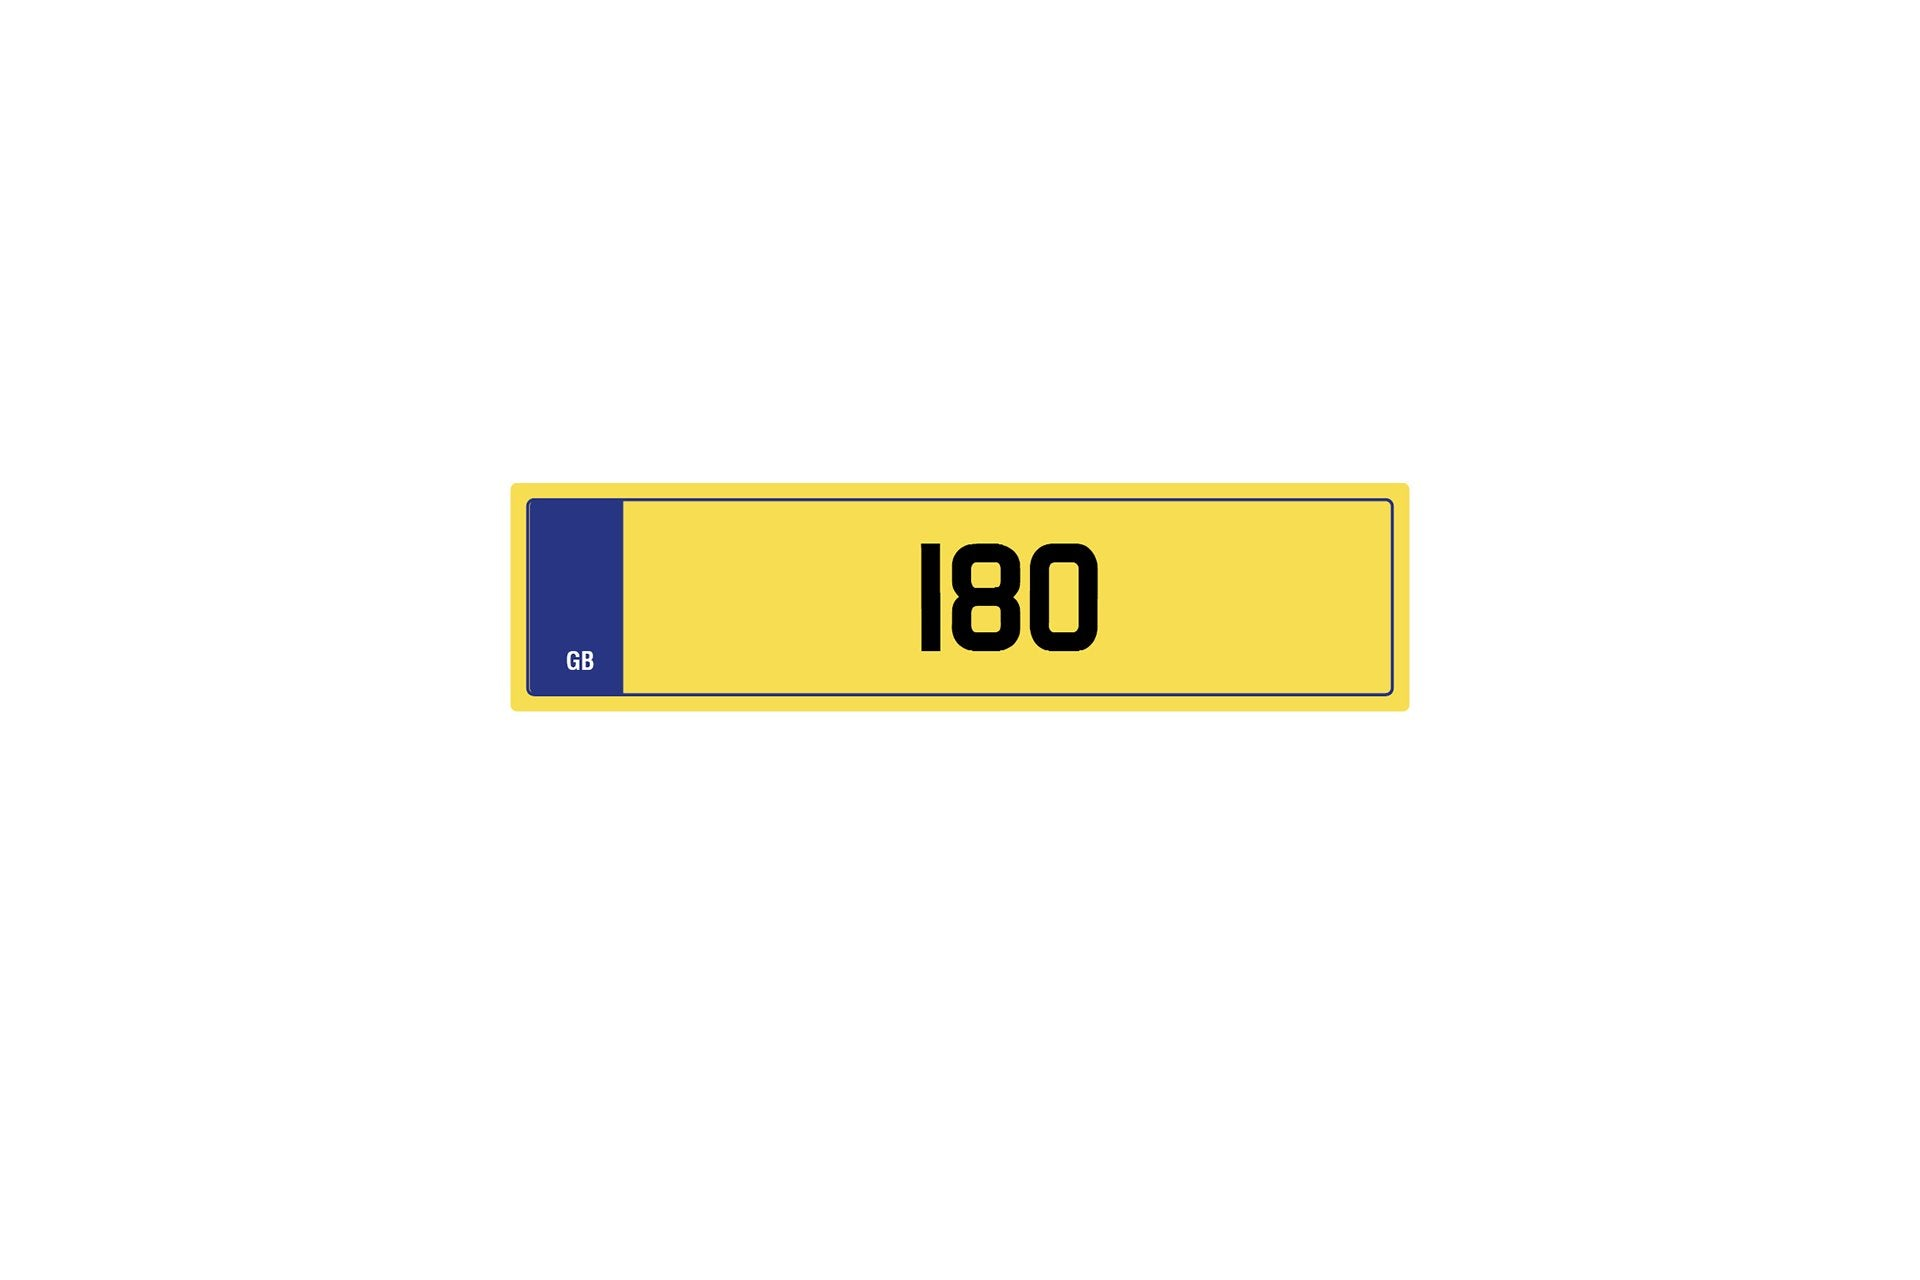 Private Plate 180 by Kahn - Image 279